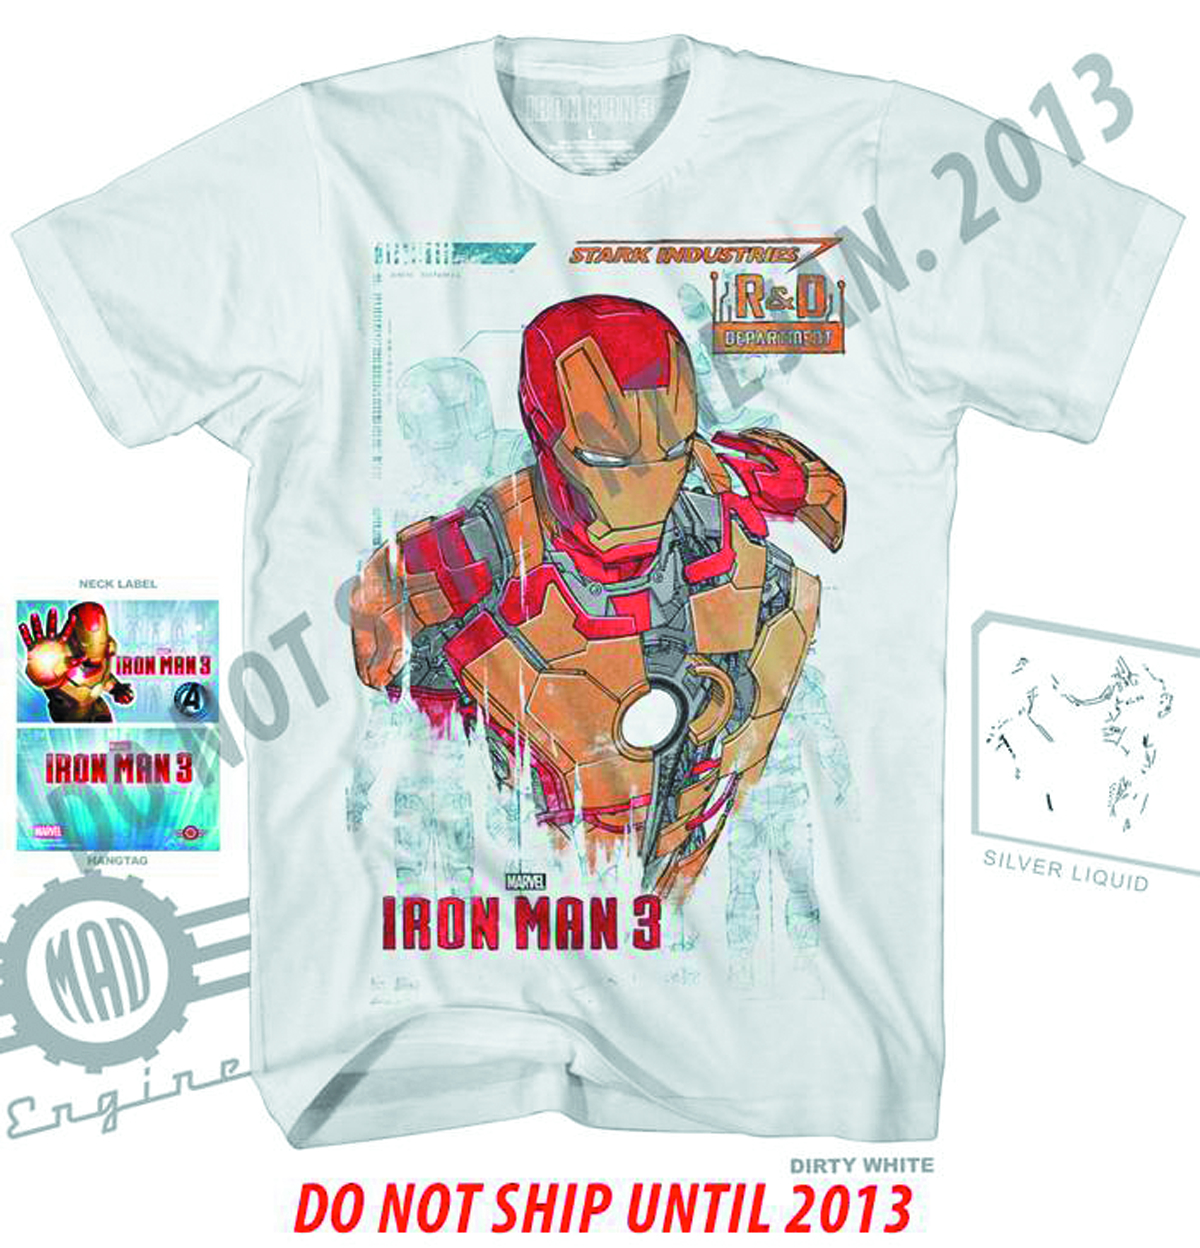 IRON MAN 3 R AND D-M DIRTY WHITE T/S MED